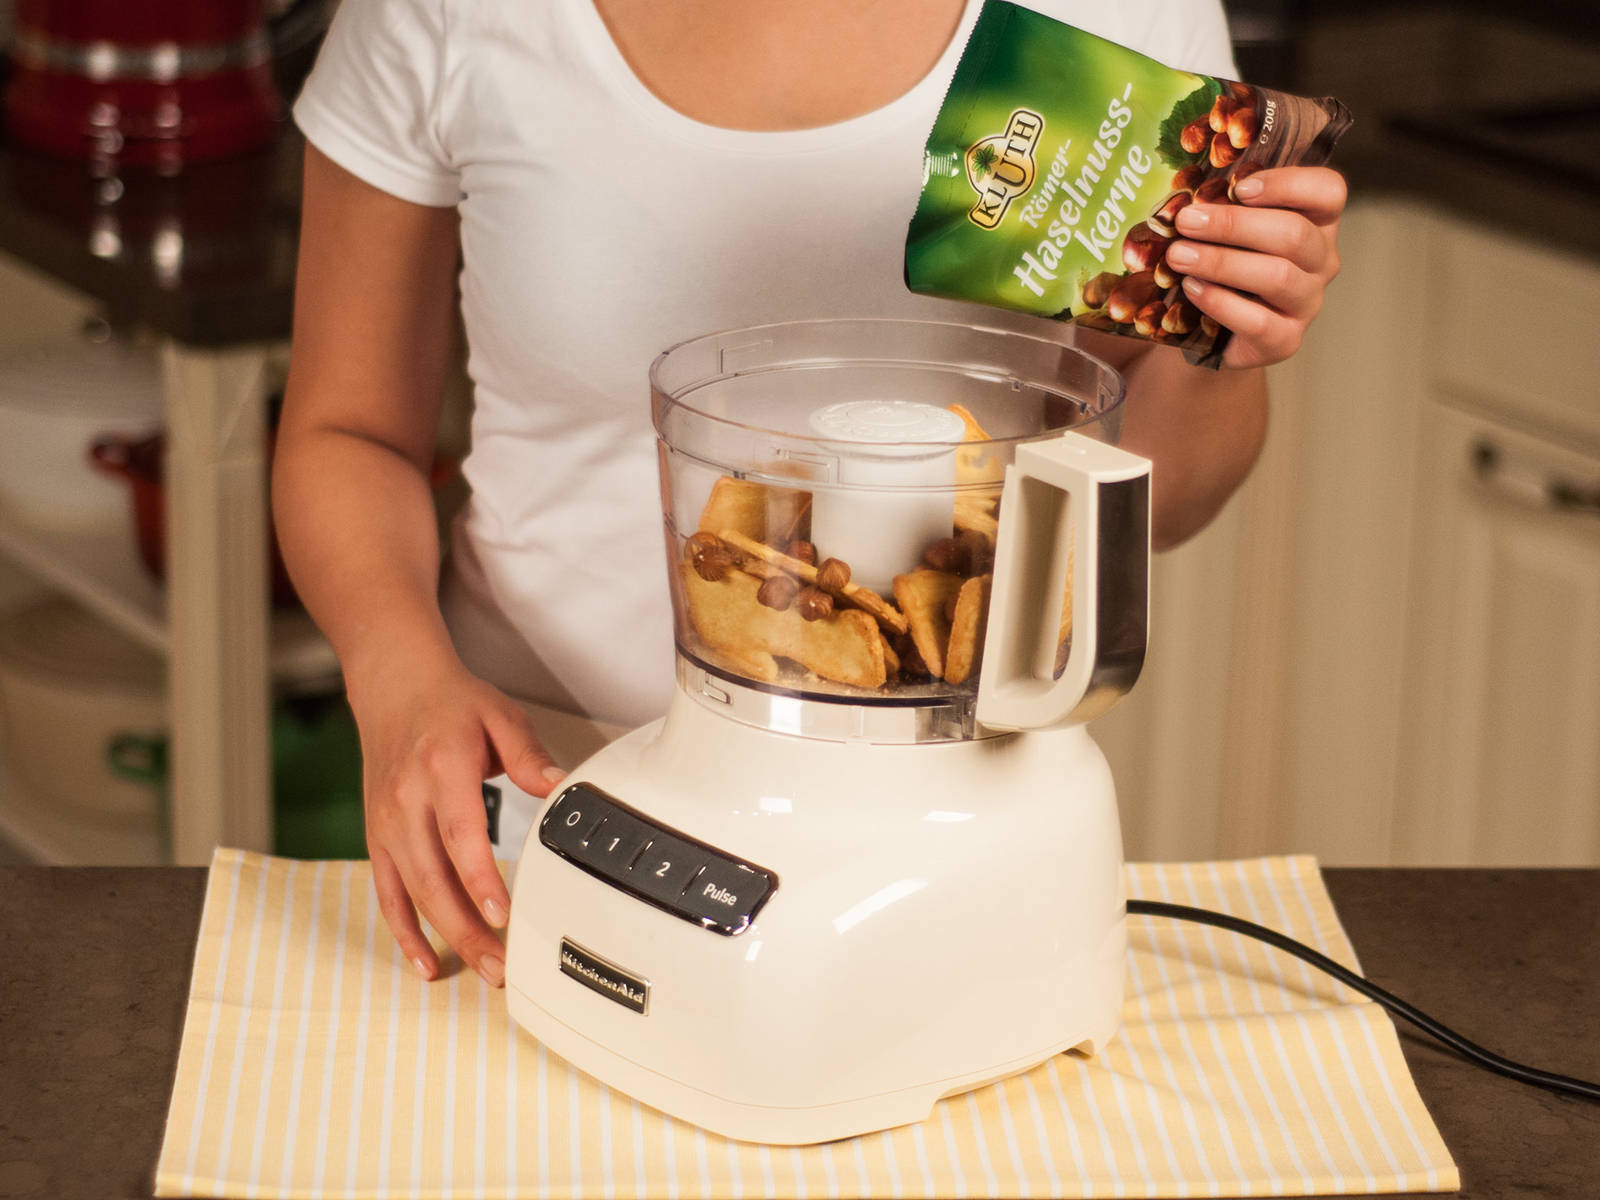 Preheat oven to 180°C/355°F. In a food processor, combine almond cookies, hazelnuts and melted butter. Blend until smooth.